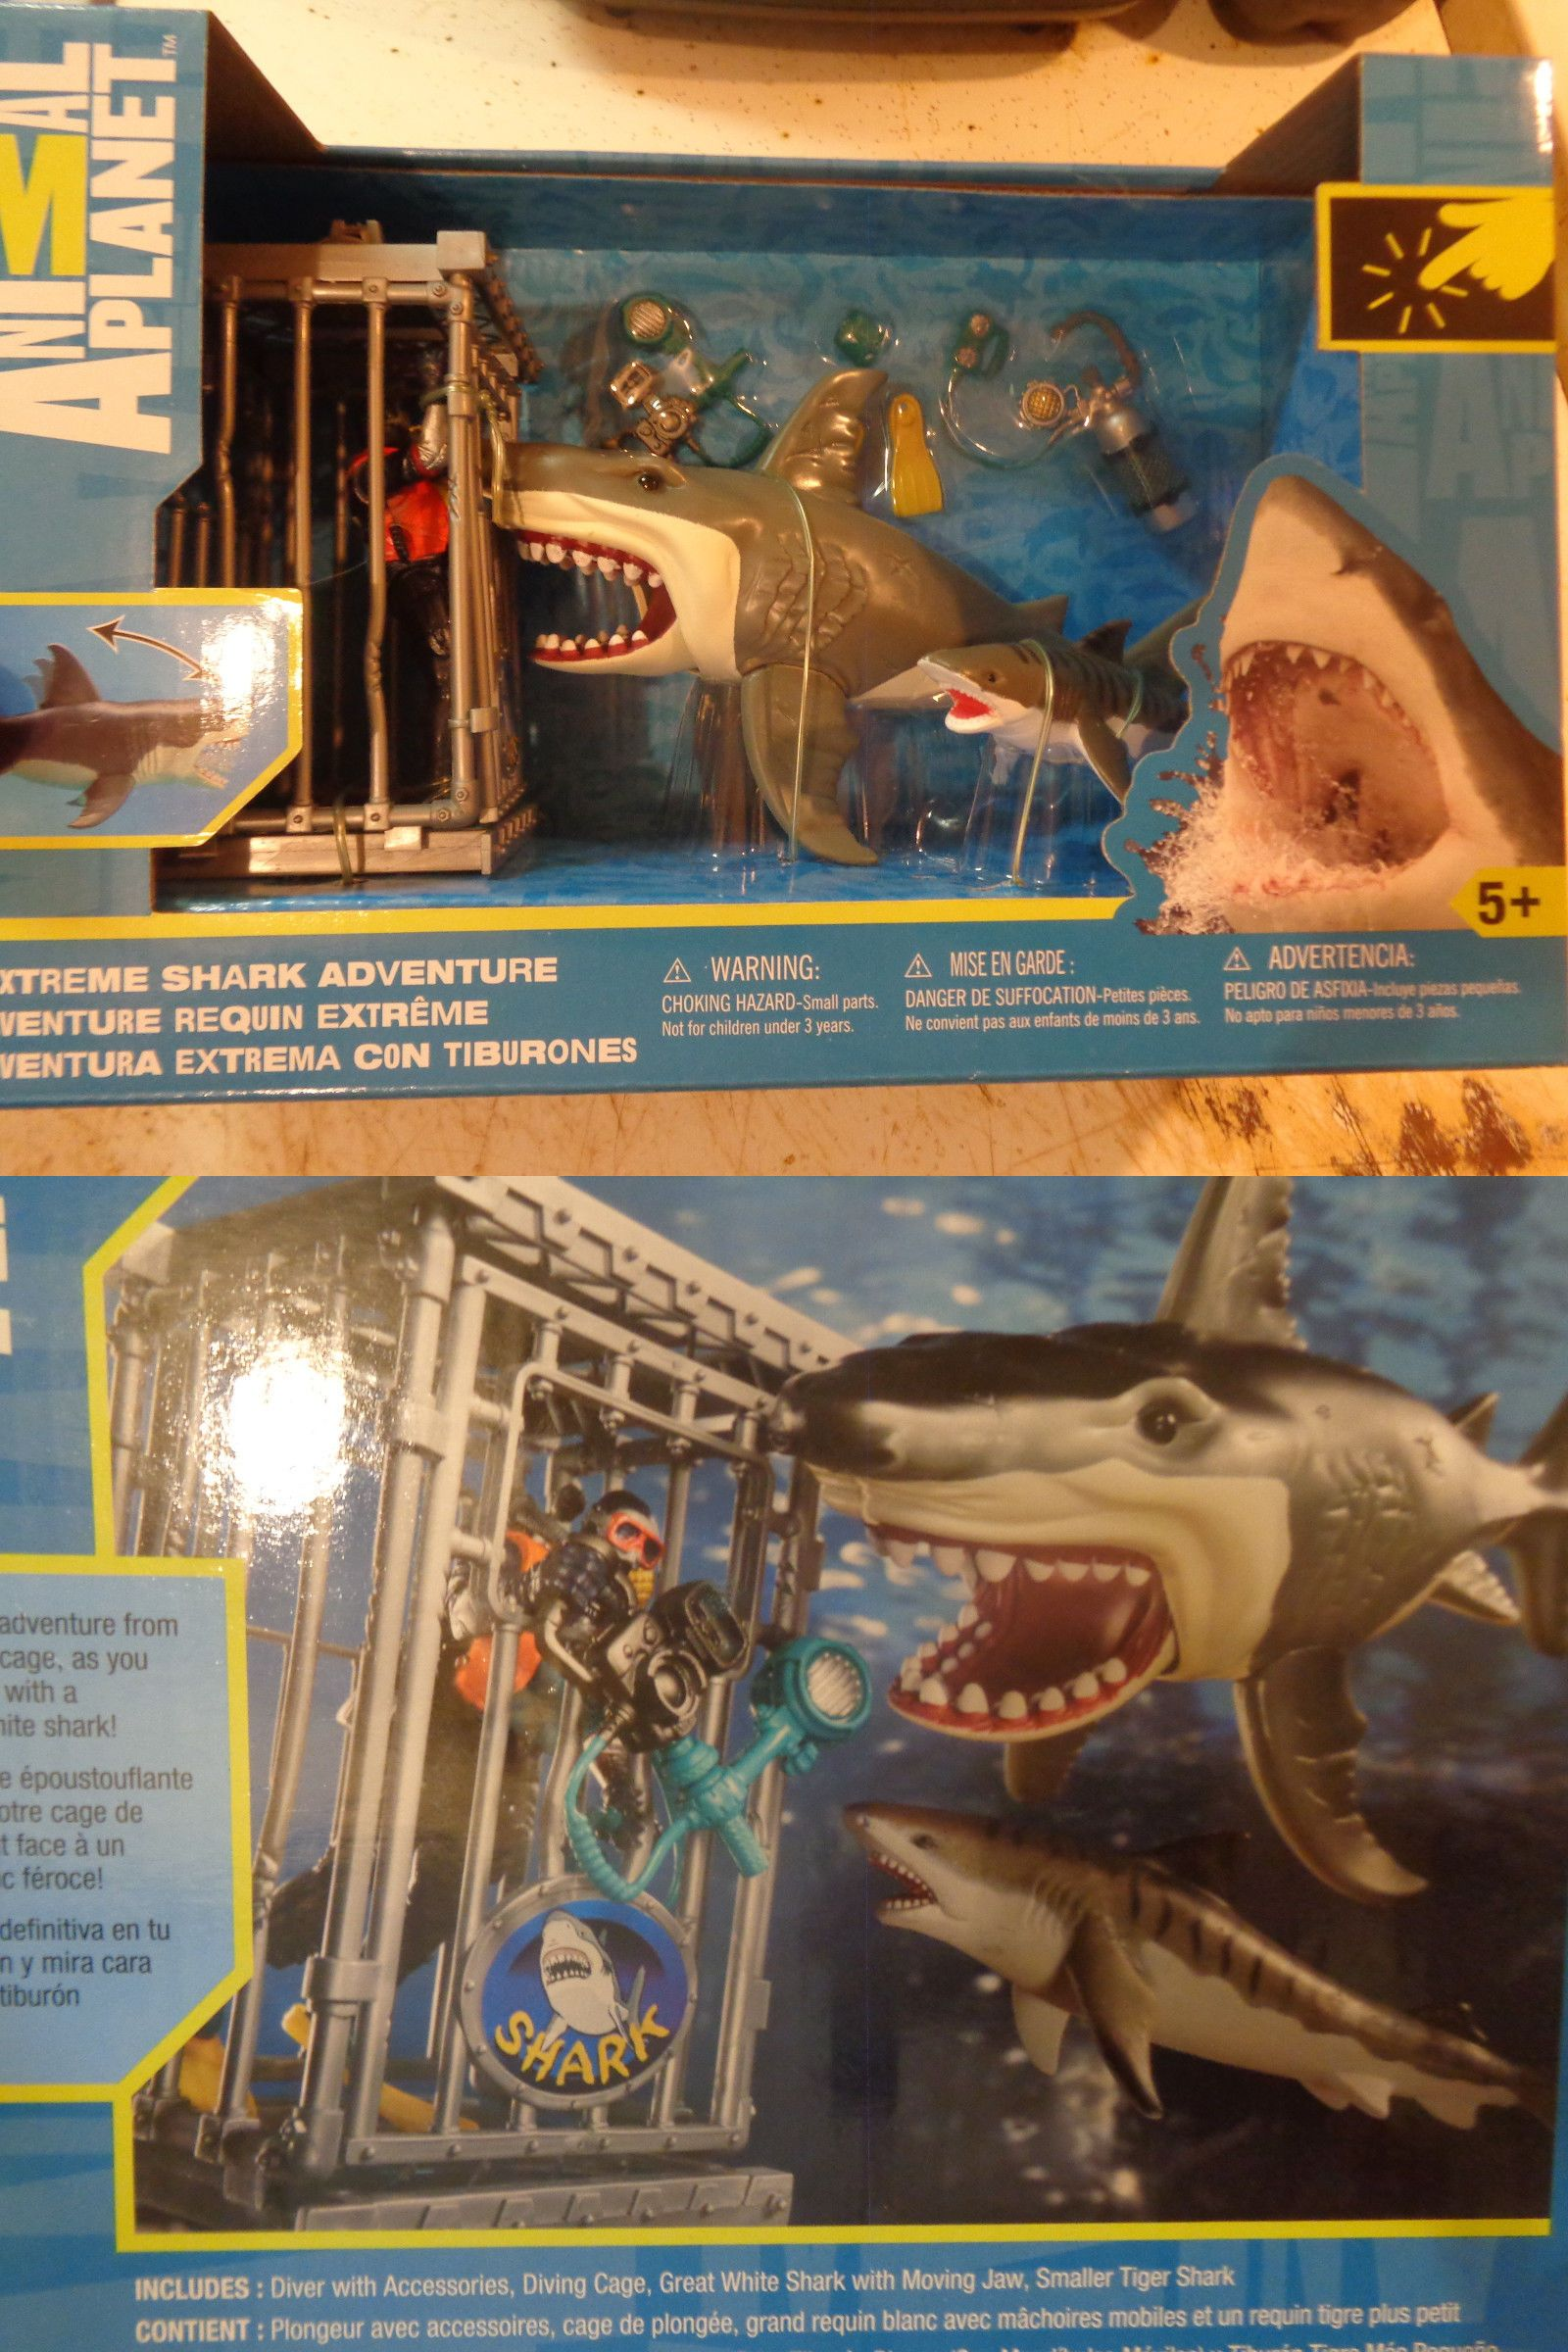 Image of: Meme Animals And Nature 31744 Animal Planet Extreme Shark Adventure Cage Playset Toysrus Exclusive Toy u003e Buy It Now Only 4999 On Ebay Pinterest Animals And Nature 31744 Animal Planet Extreme Shark Adventure